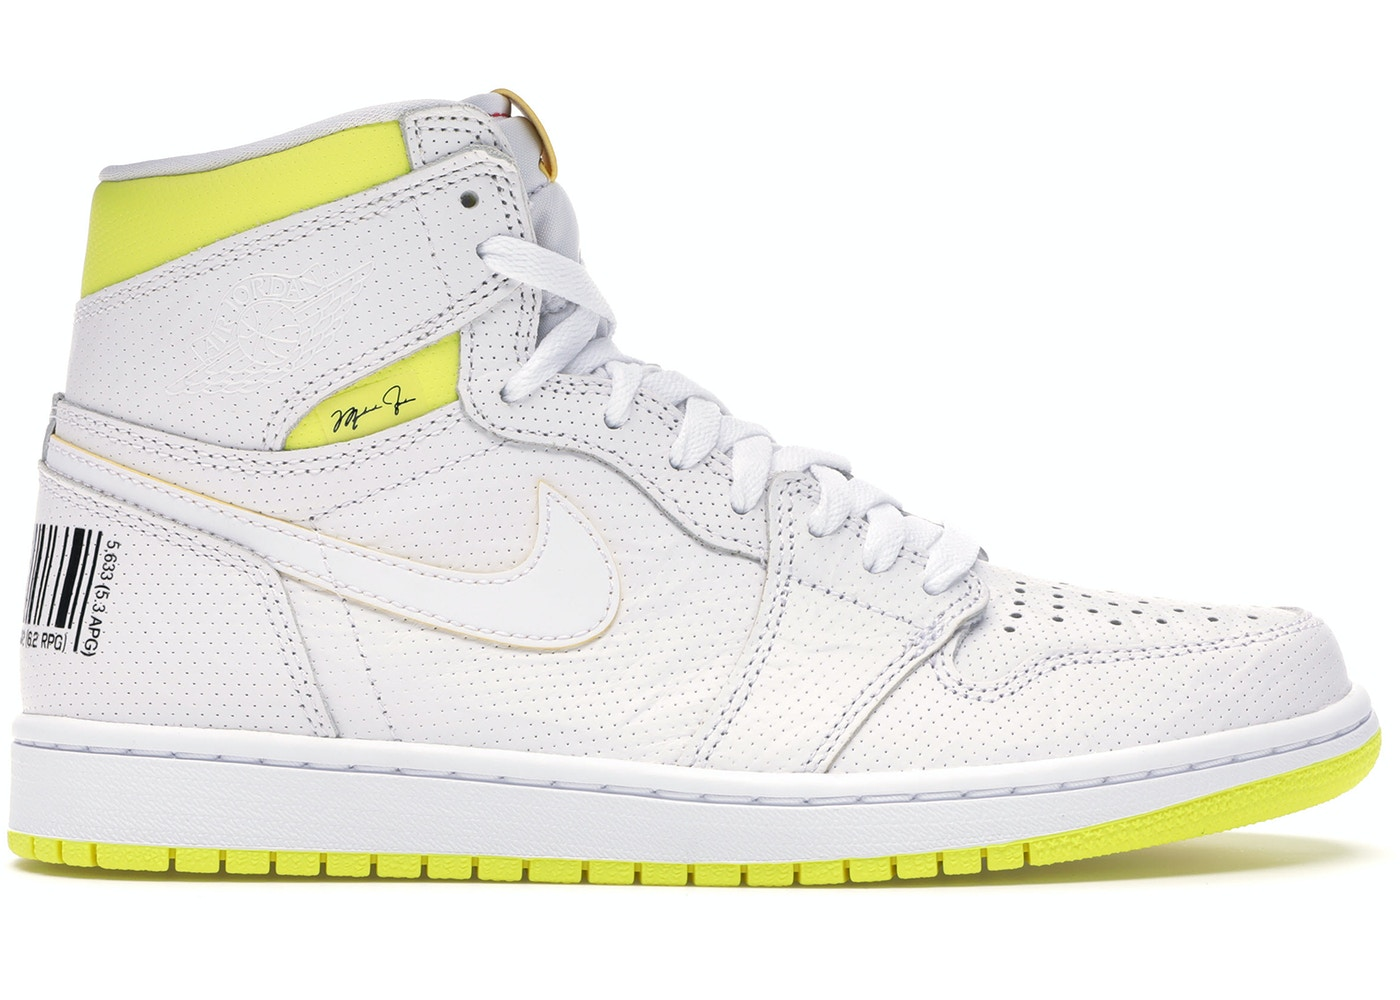 the best official site 100% high quality Buy Air Jordan 1 Shoes & Deadstock Sneakers